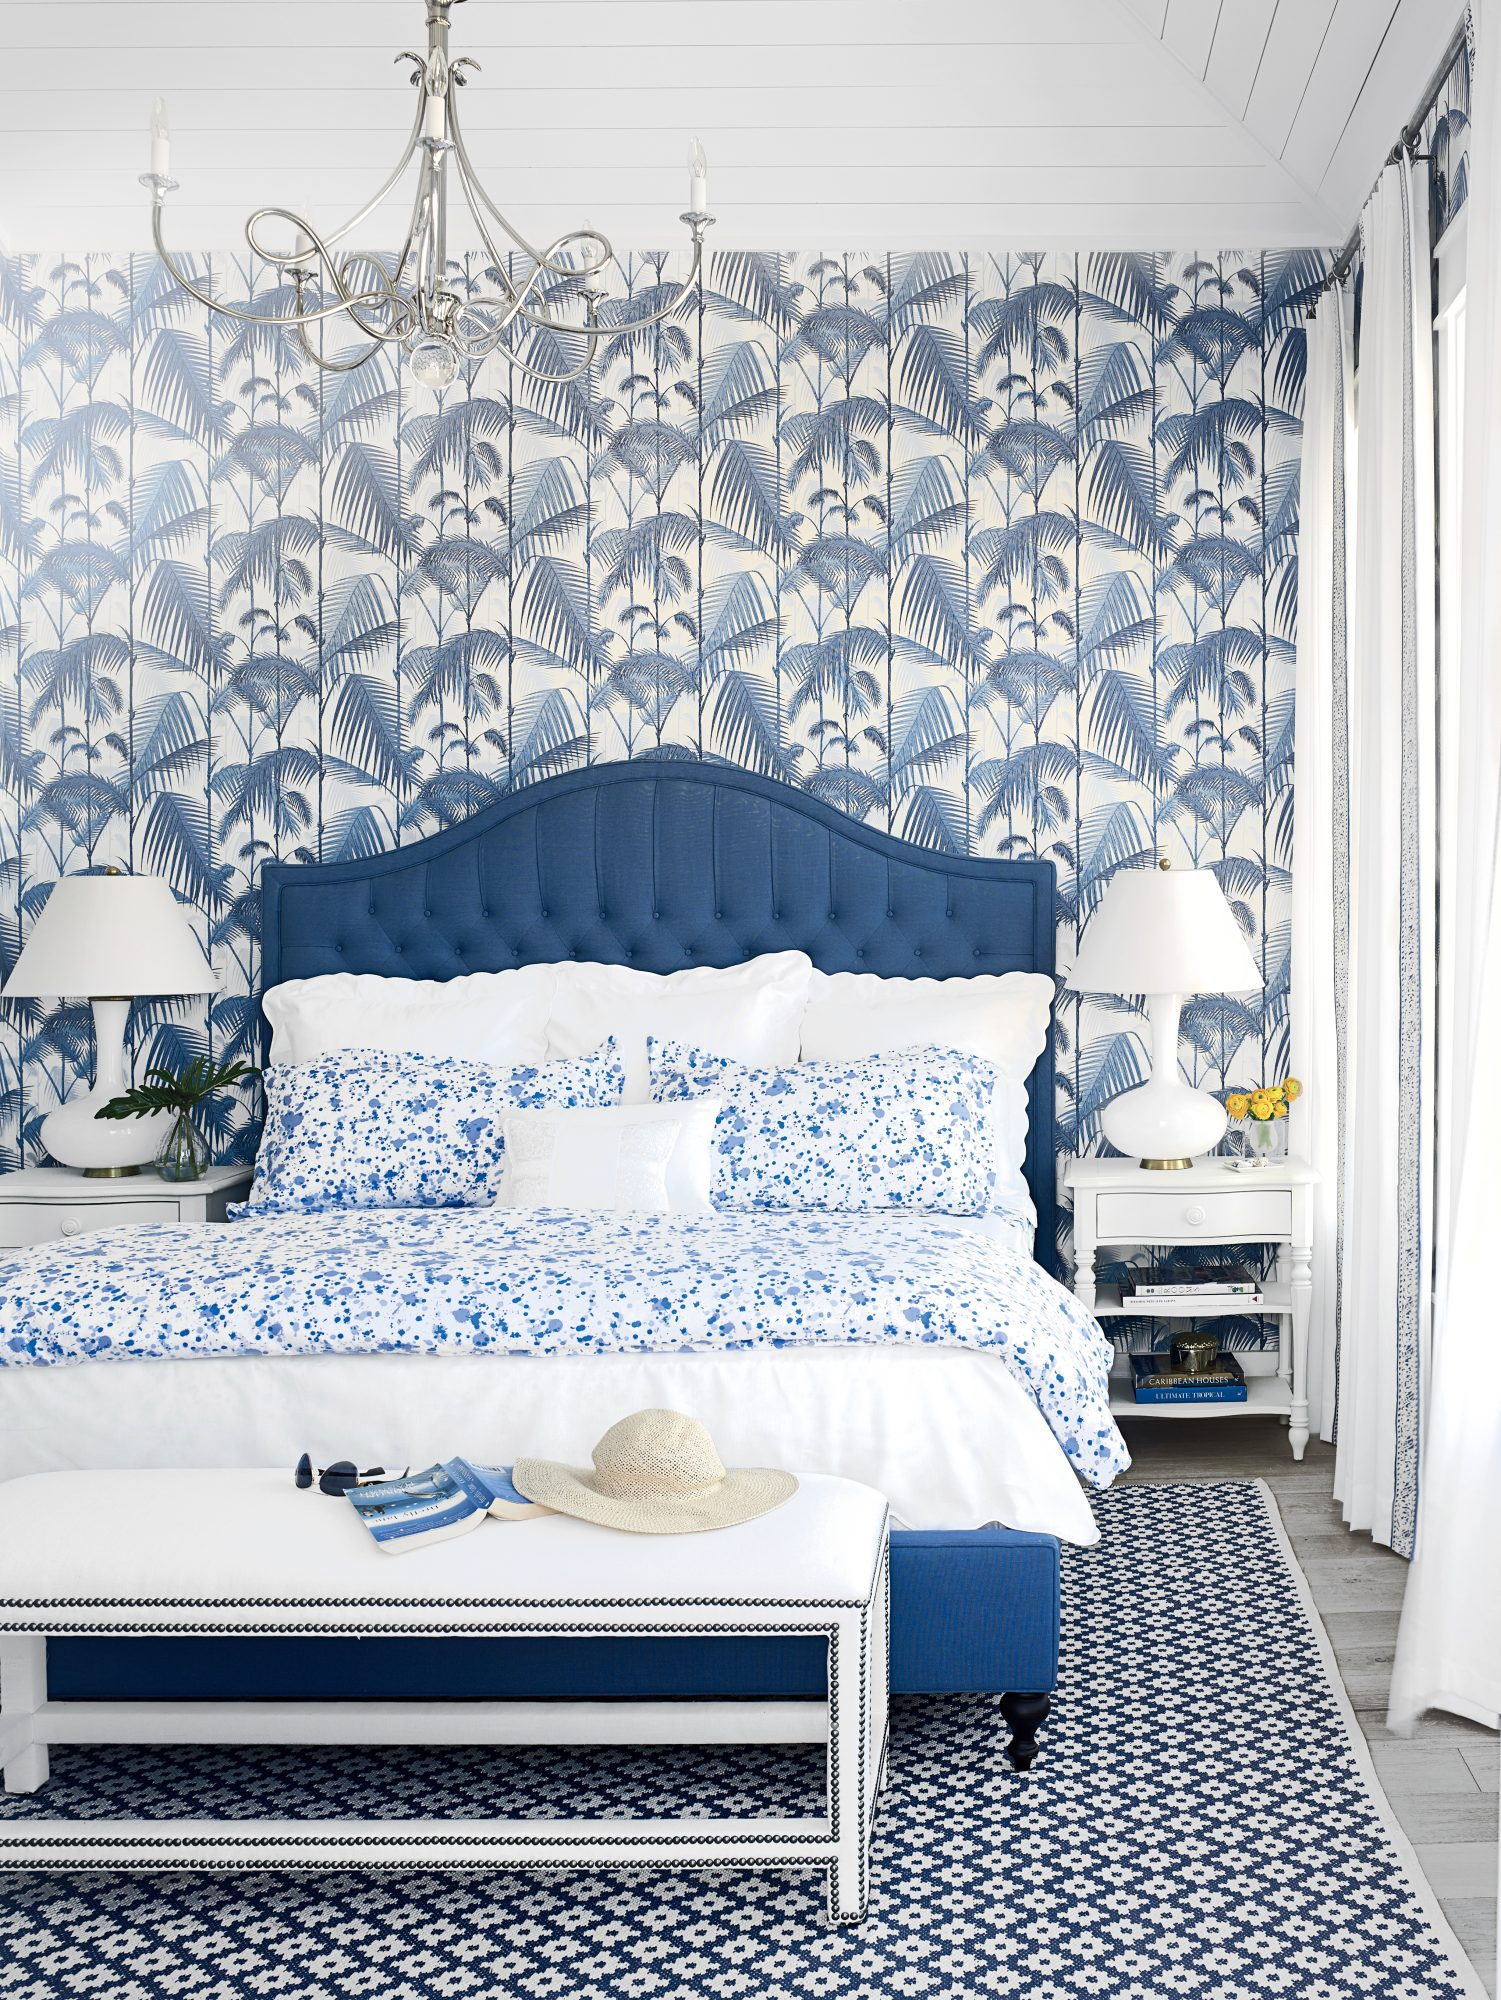 Designer Bailey McCarthy creates a striking, monochromatic look in our Cinnamon Shore Showhouse master bedroom. Using this many patterns—on the palm frond wallpaper, printed bedding, and geometric rug—could feel busy, but thanks to their shared ocean-goin